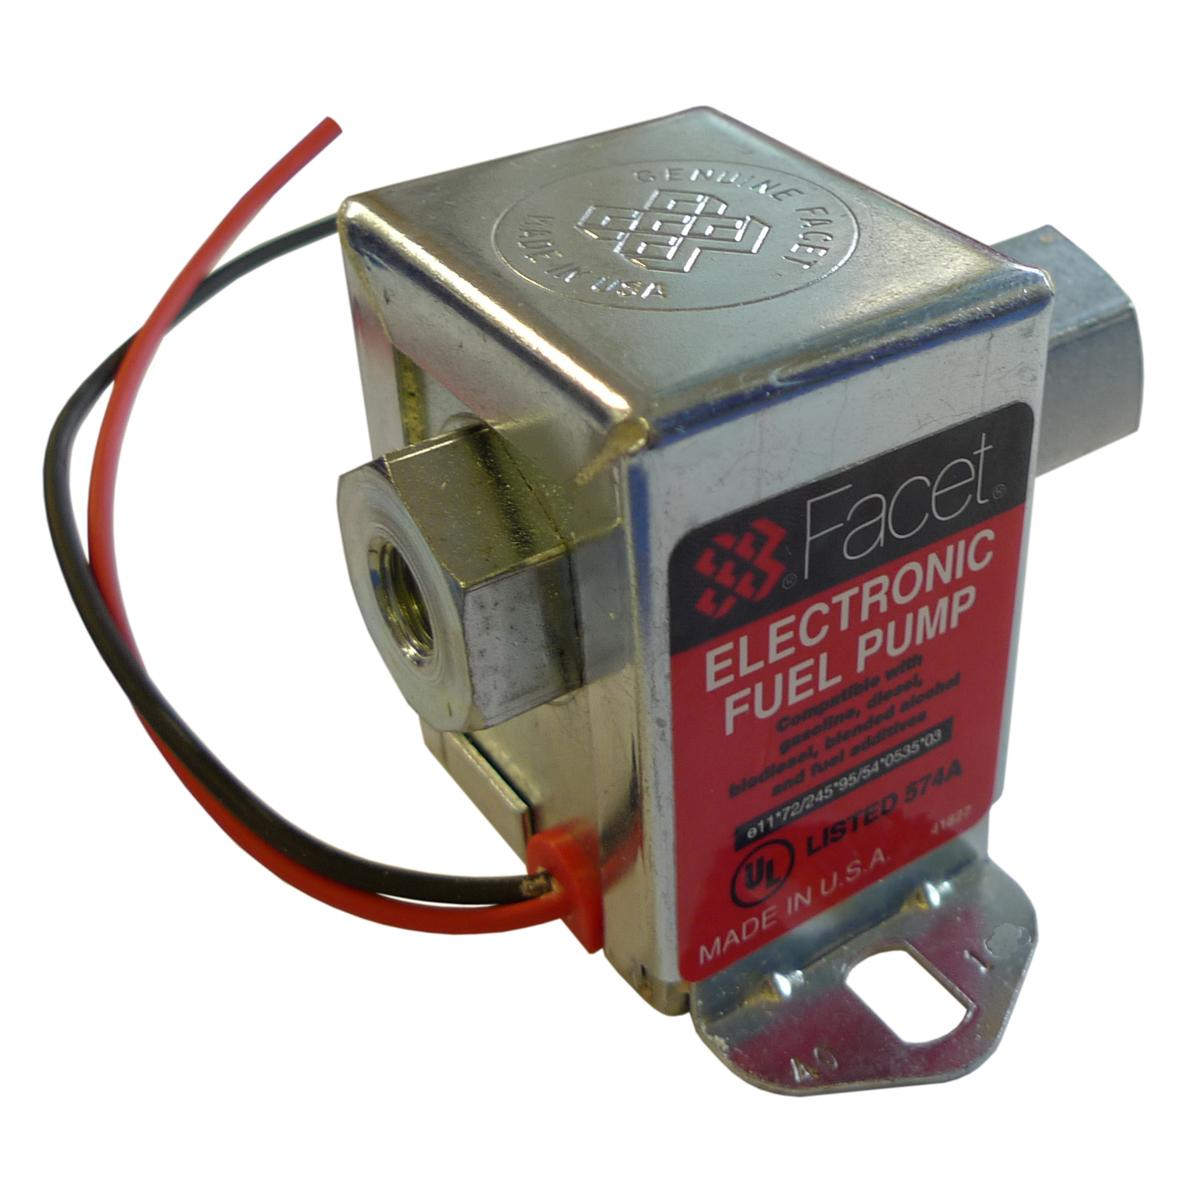 Facet Solid State Electric Cube Fuel Pump 40106 From